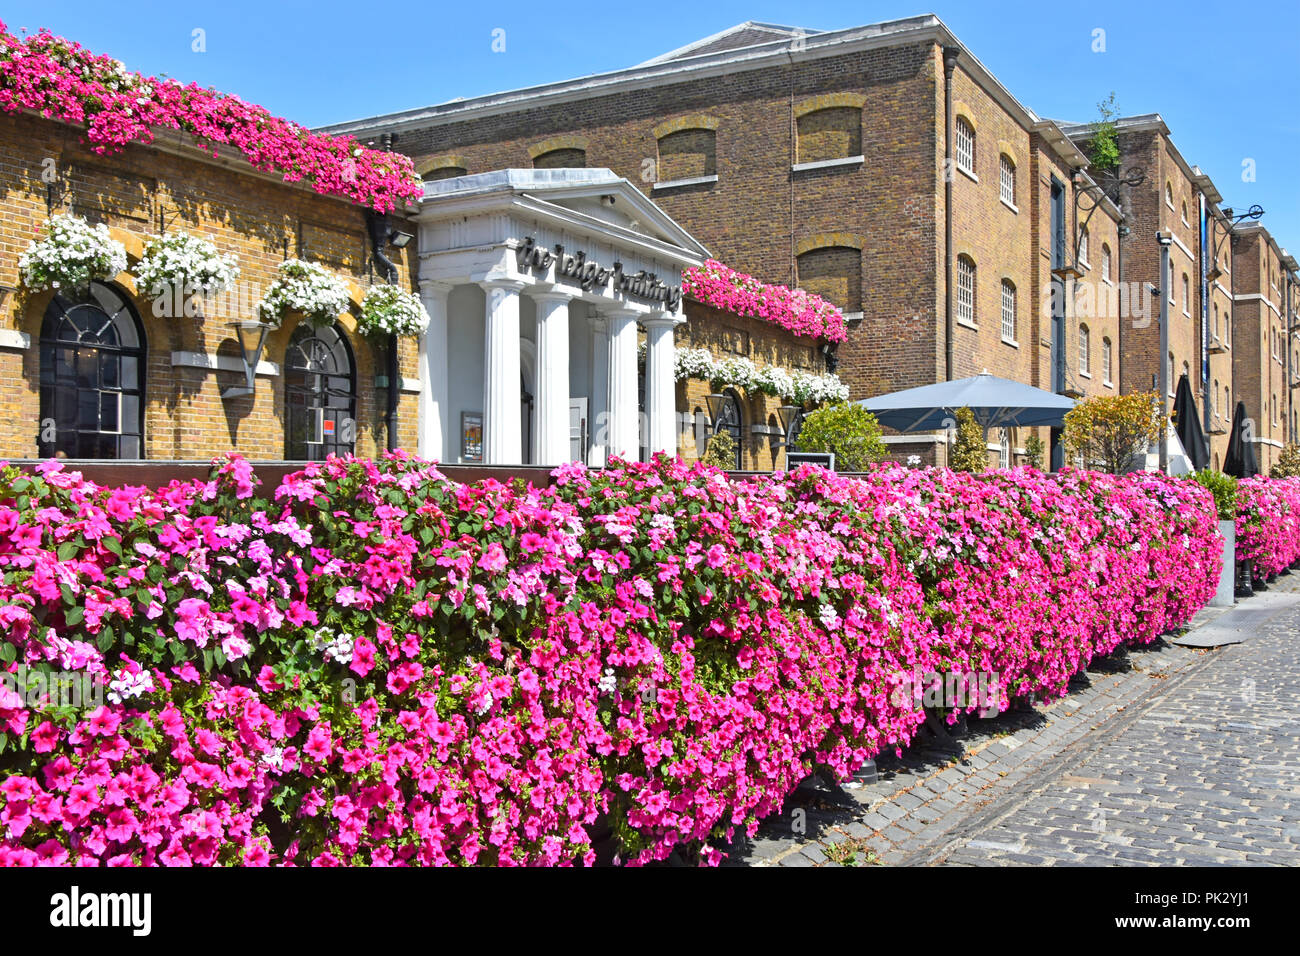 London street scene West India Quay Canary Wharf Petunia flowers at historical Wetherspoons Ledger Building London pub restaurant business England UK - Stock Image